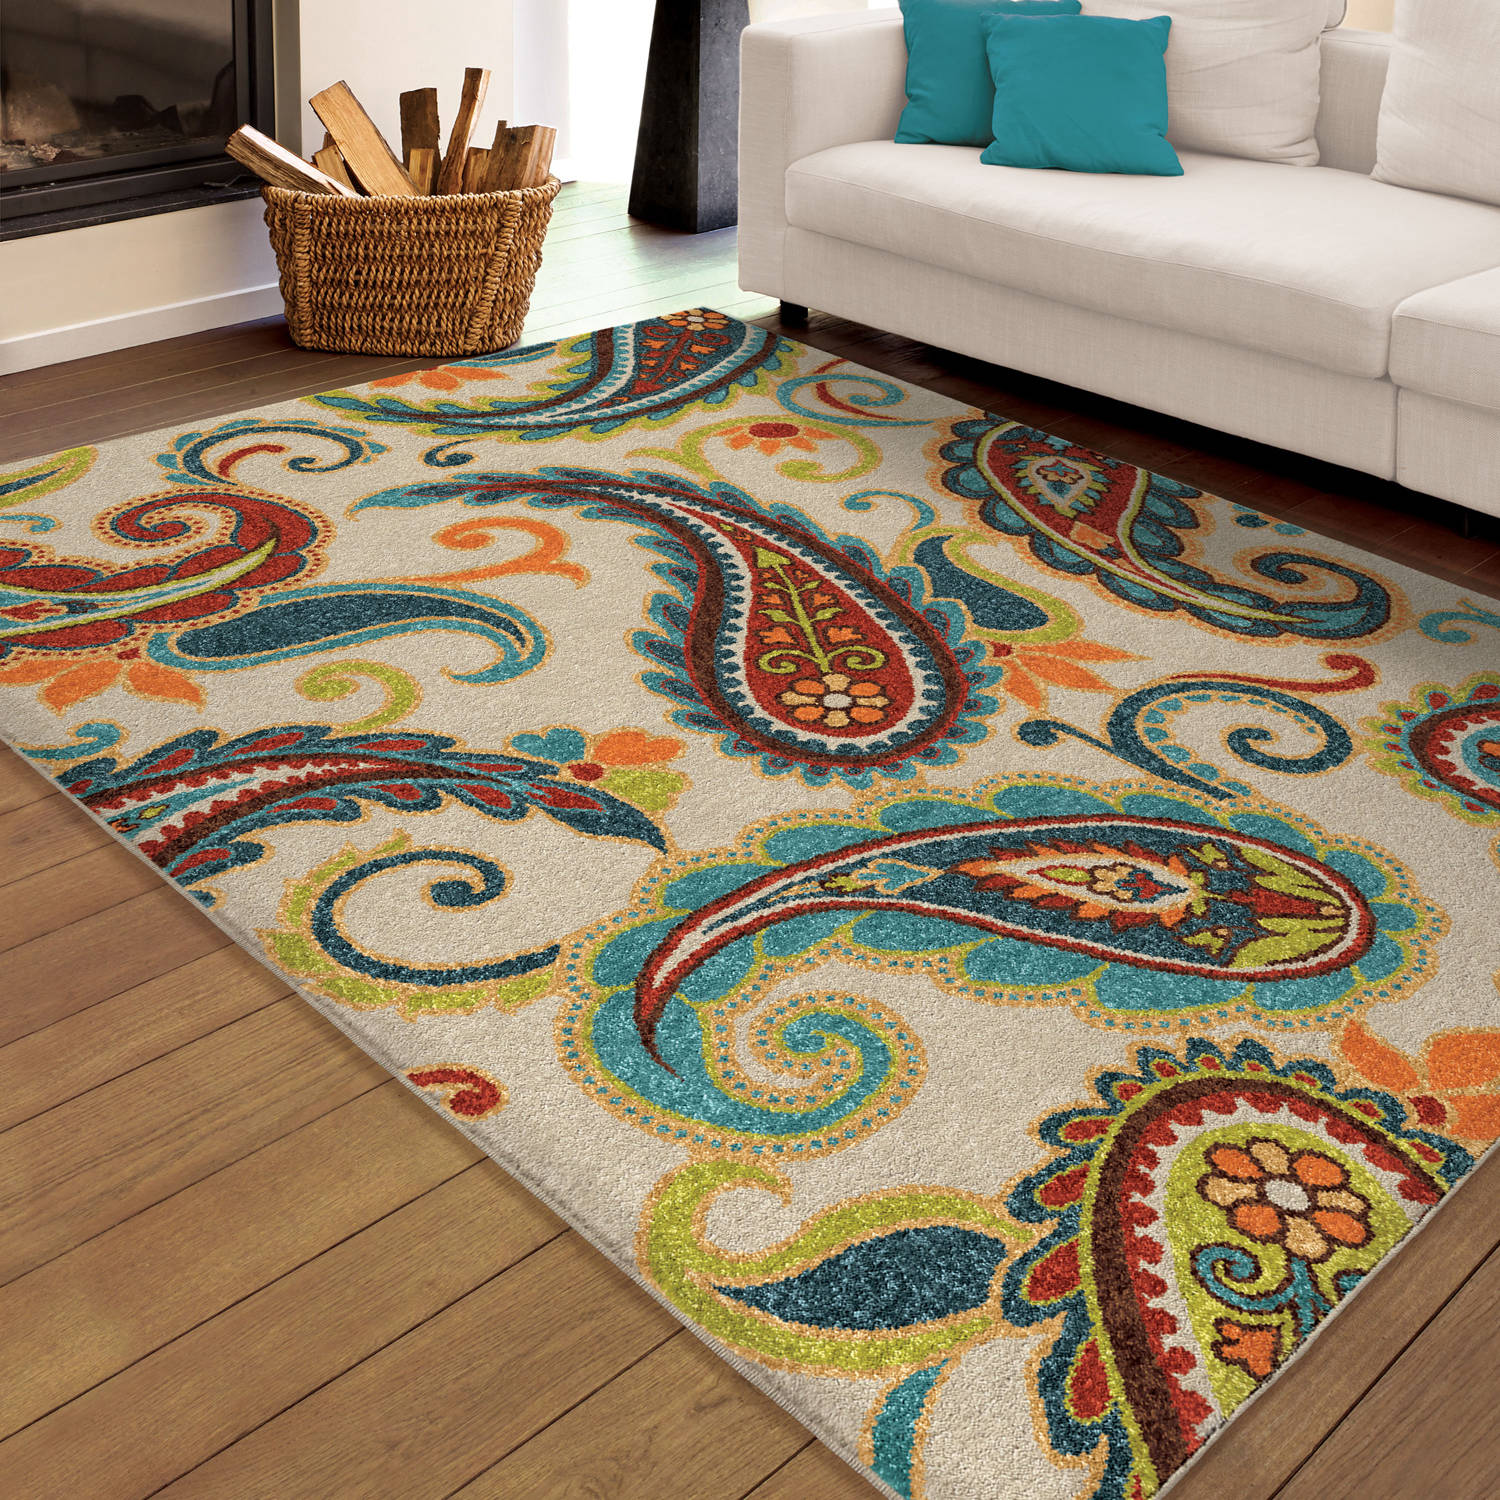 Orian Rugs Indoor/Outdoor Paisley Wyndham Multi Colored Area Rug   Walmart .com